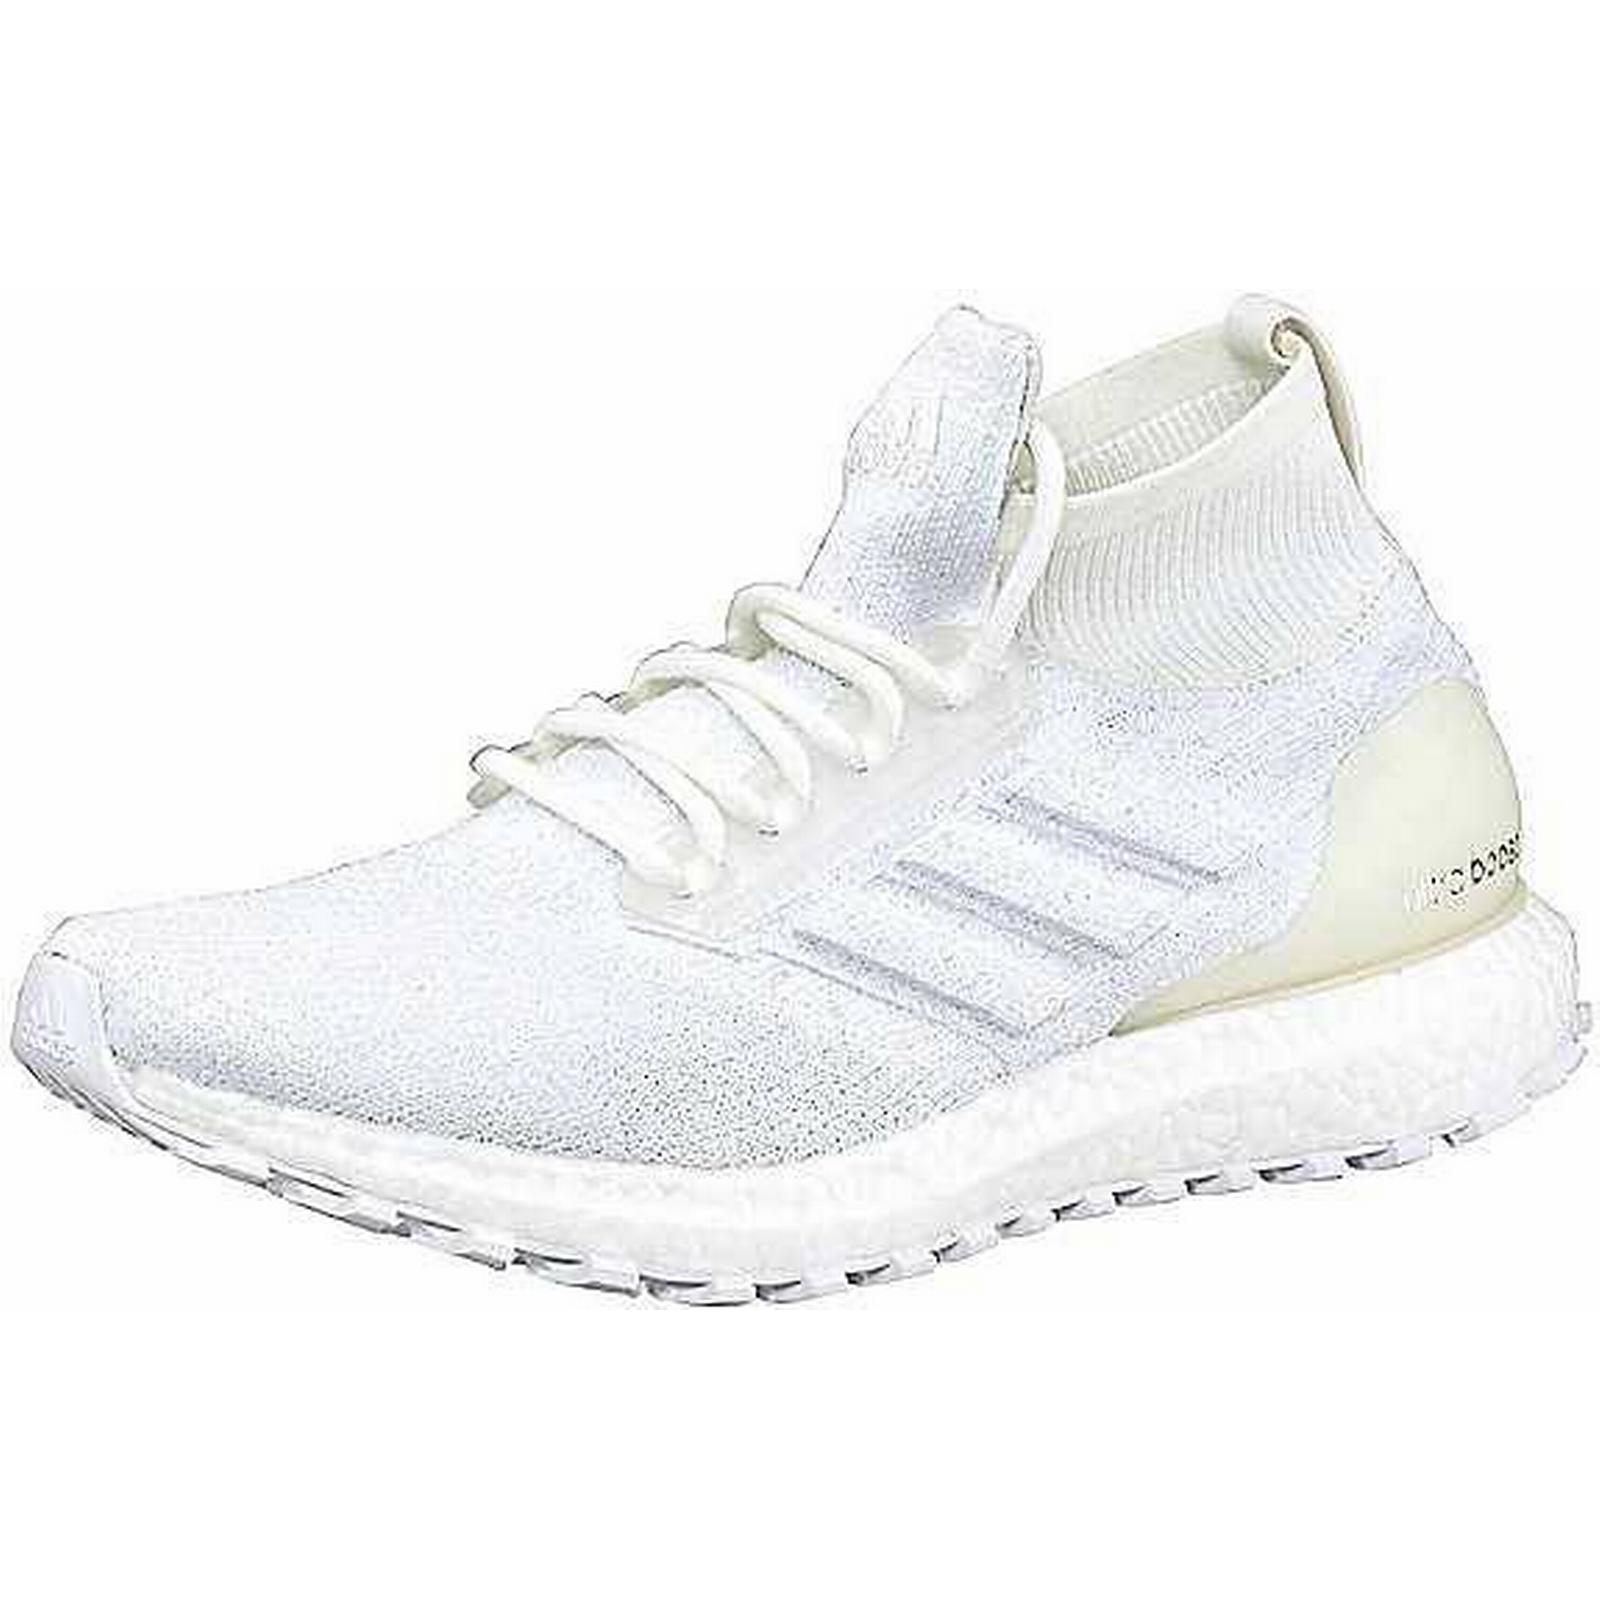 premium selection 5f381 64f25 adidas adidas adidas performance terrain « ultra - stimuler toutes les  chaussures adidas 5243a6